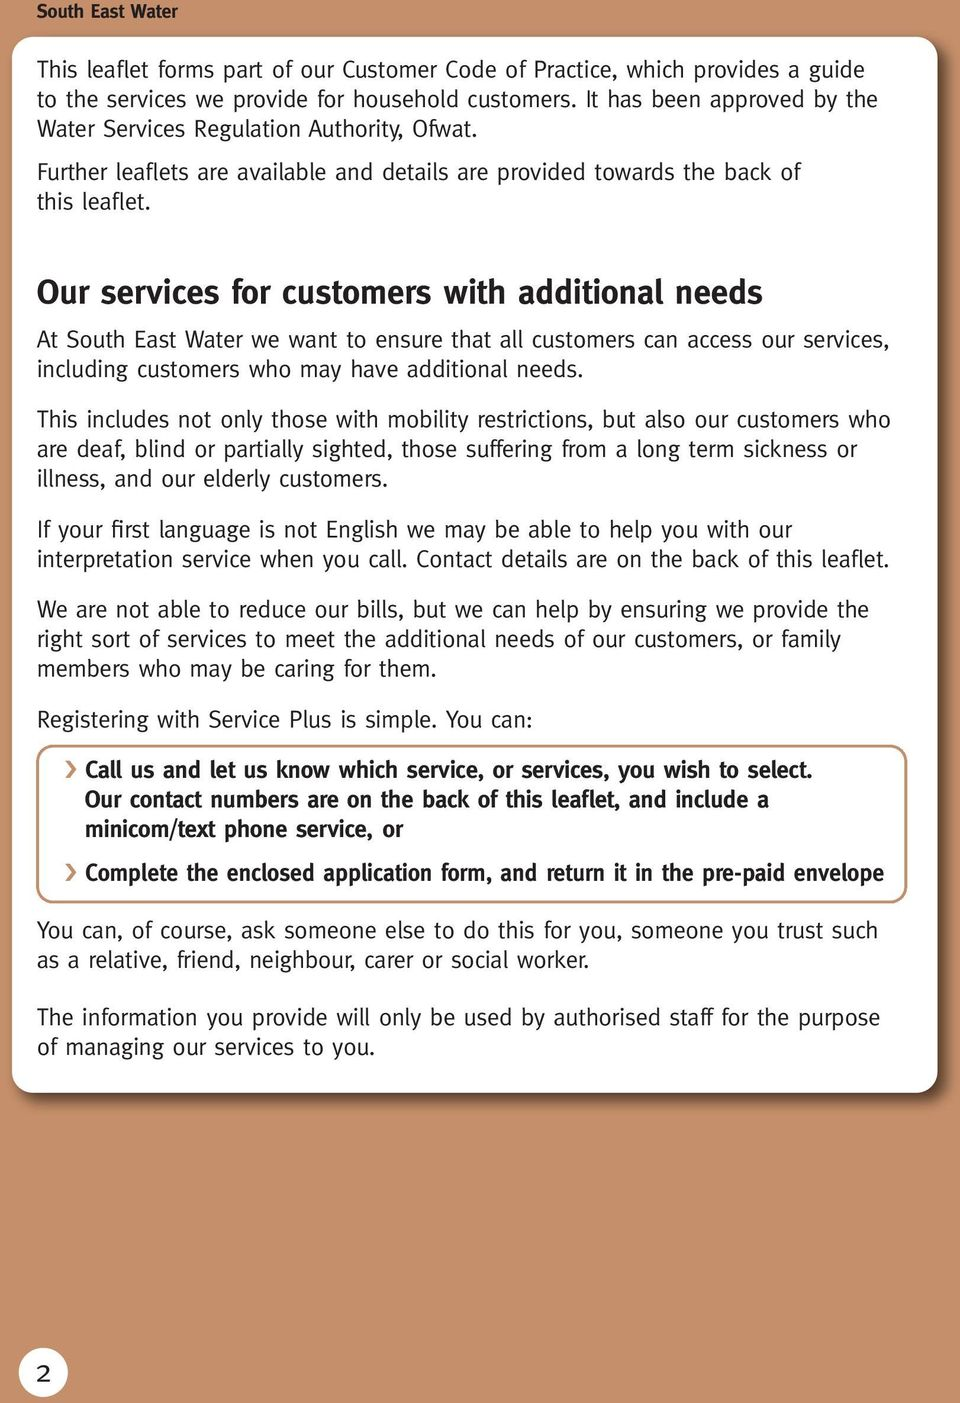 Our services for customers with additional needs At South East Water we want to ensure that all customers can access our services, including customers who may have additional needs.